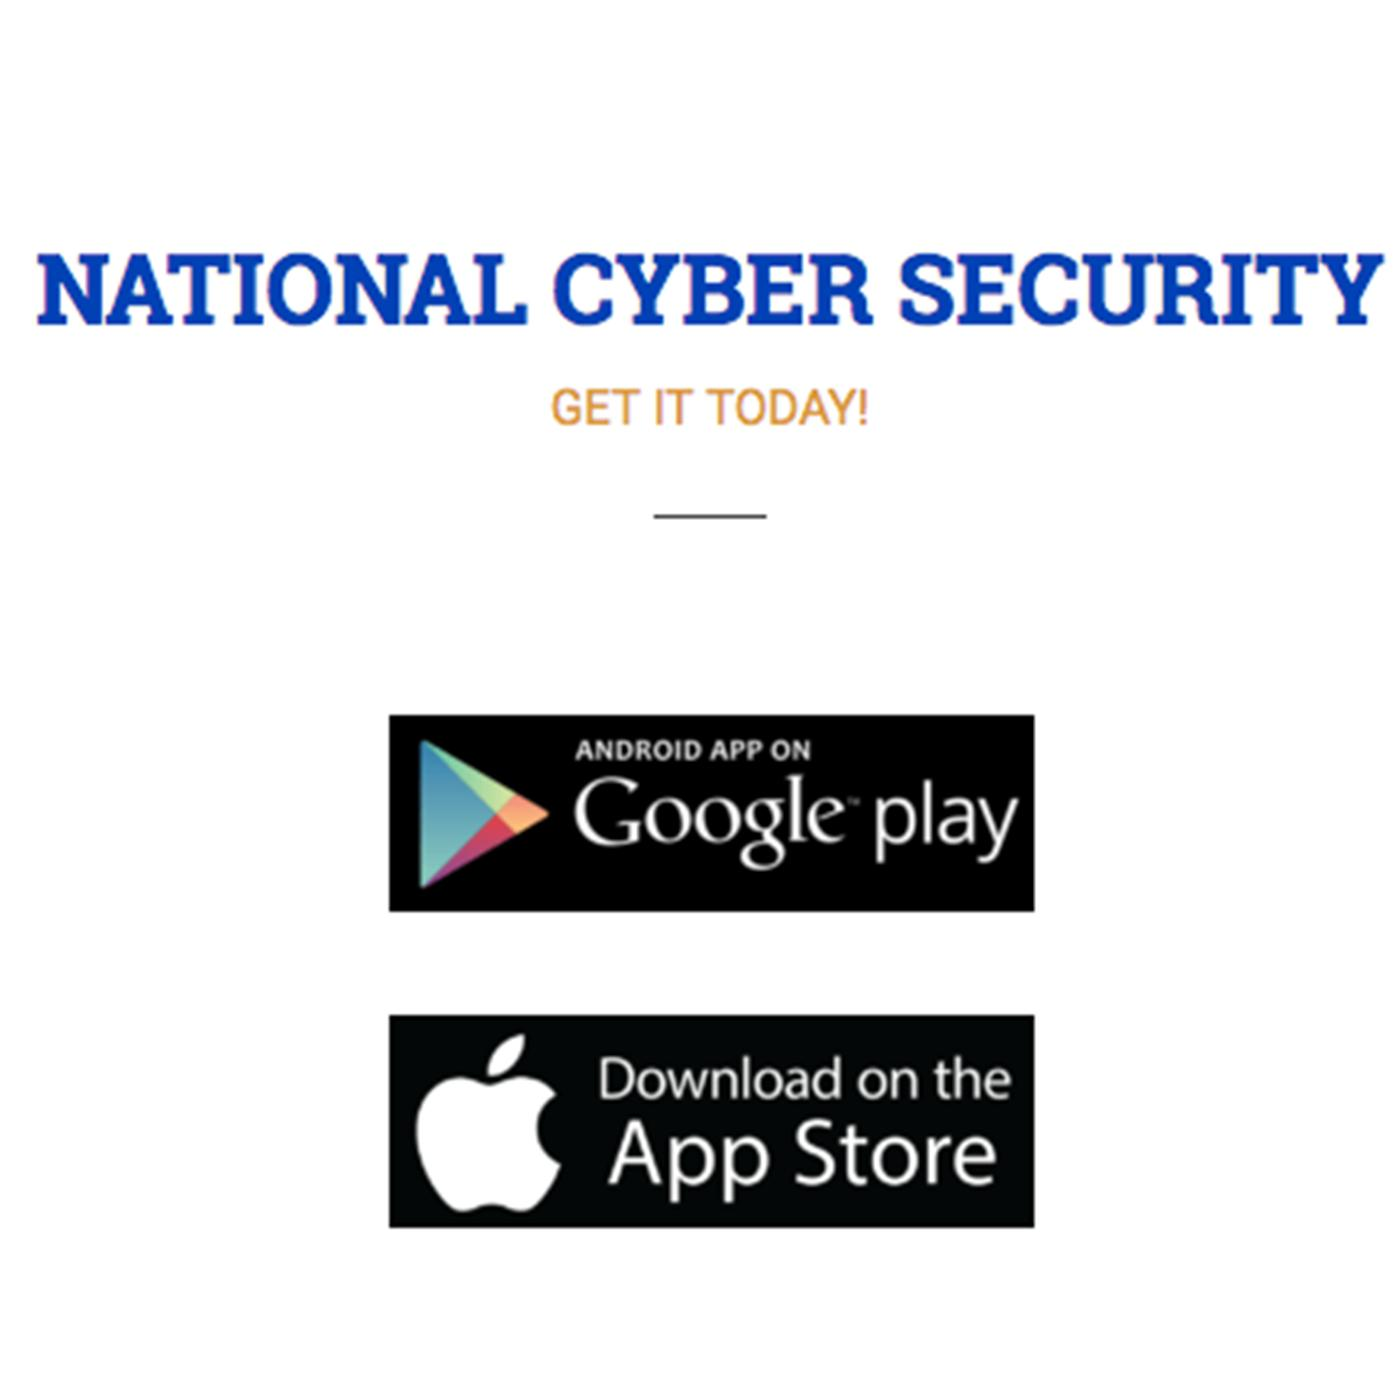 National Cyber Security By Gregory Evans